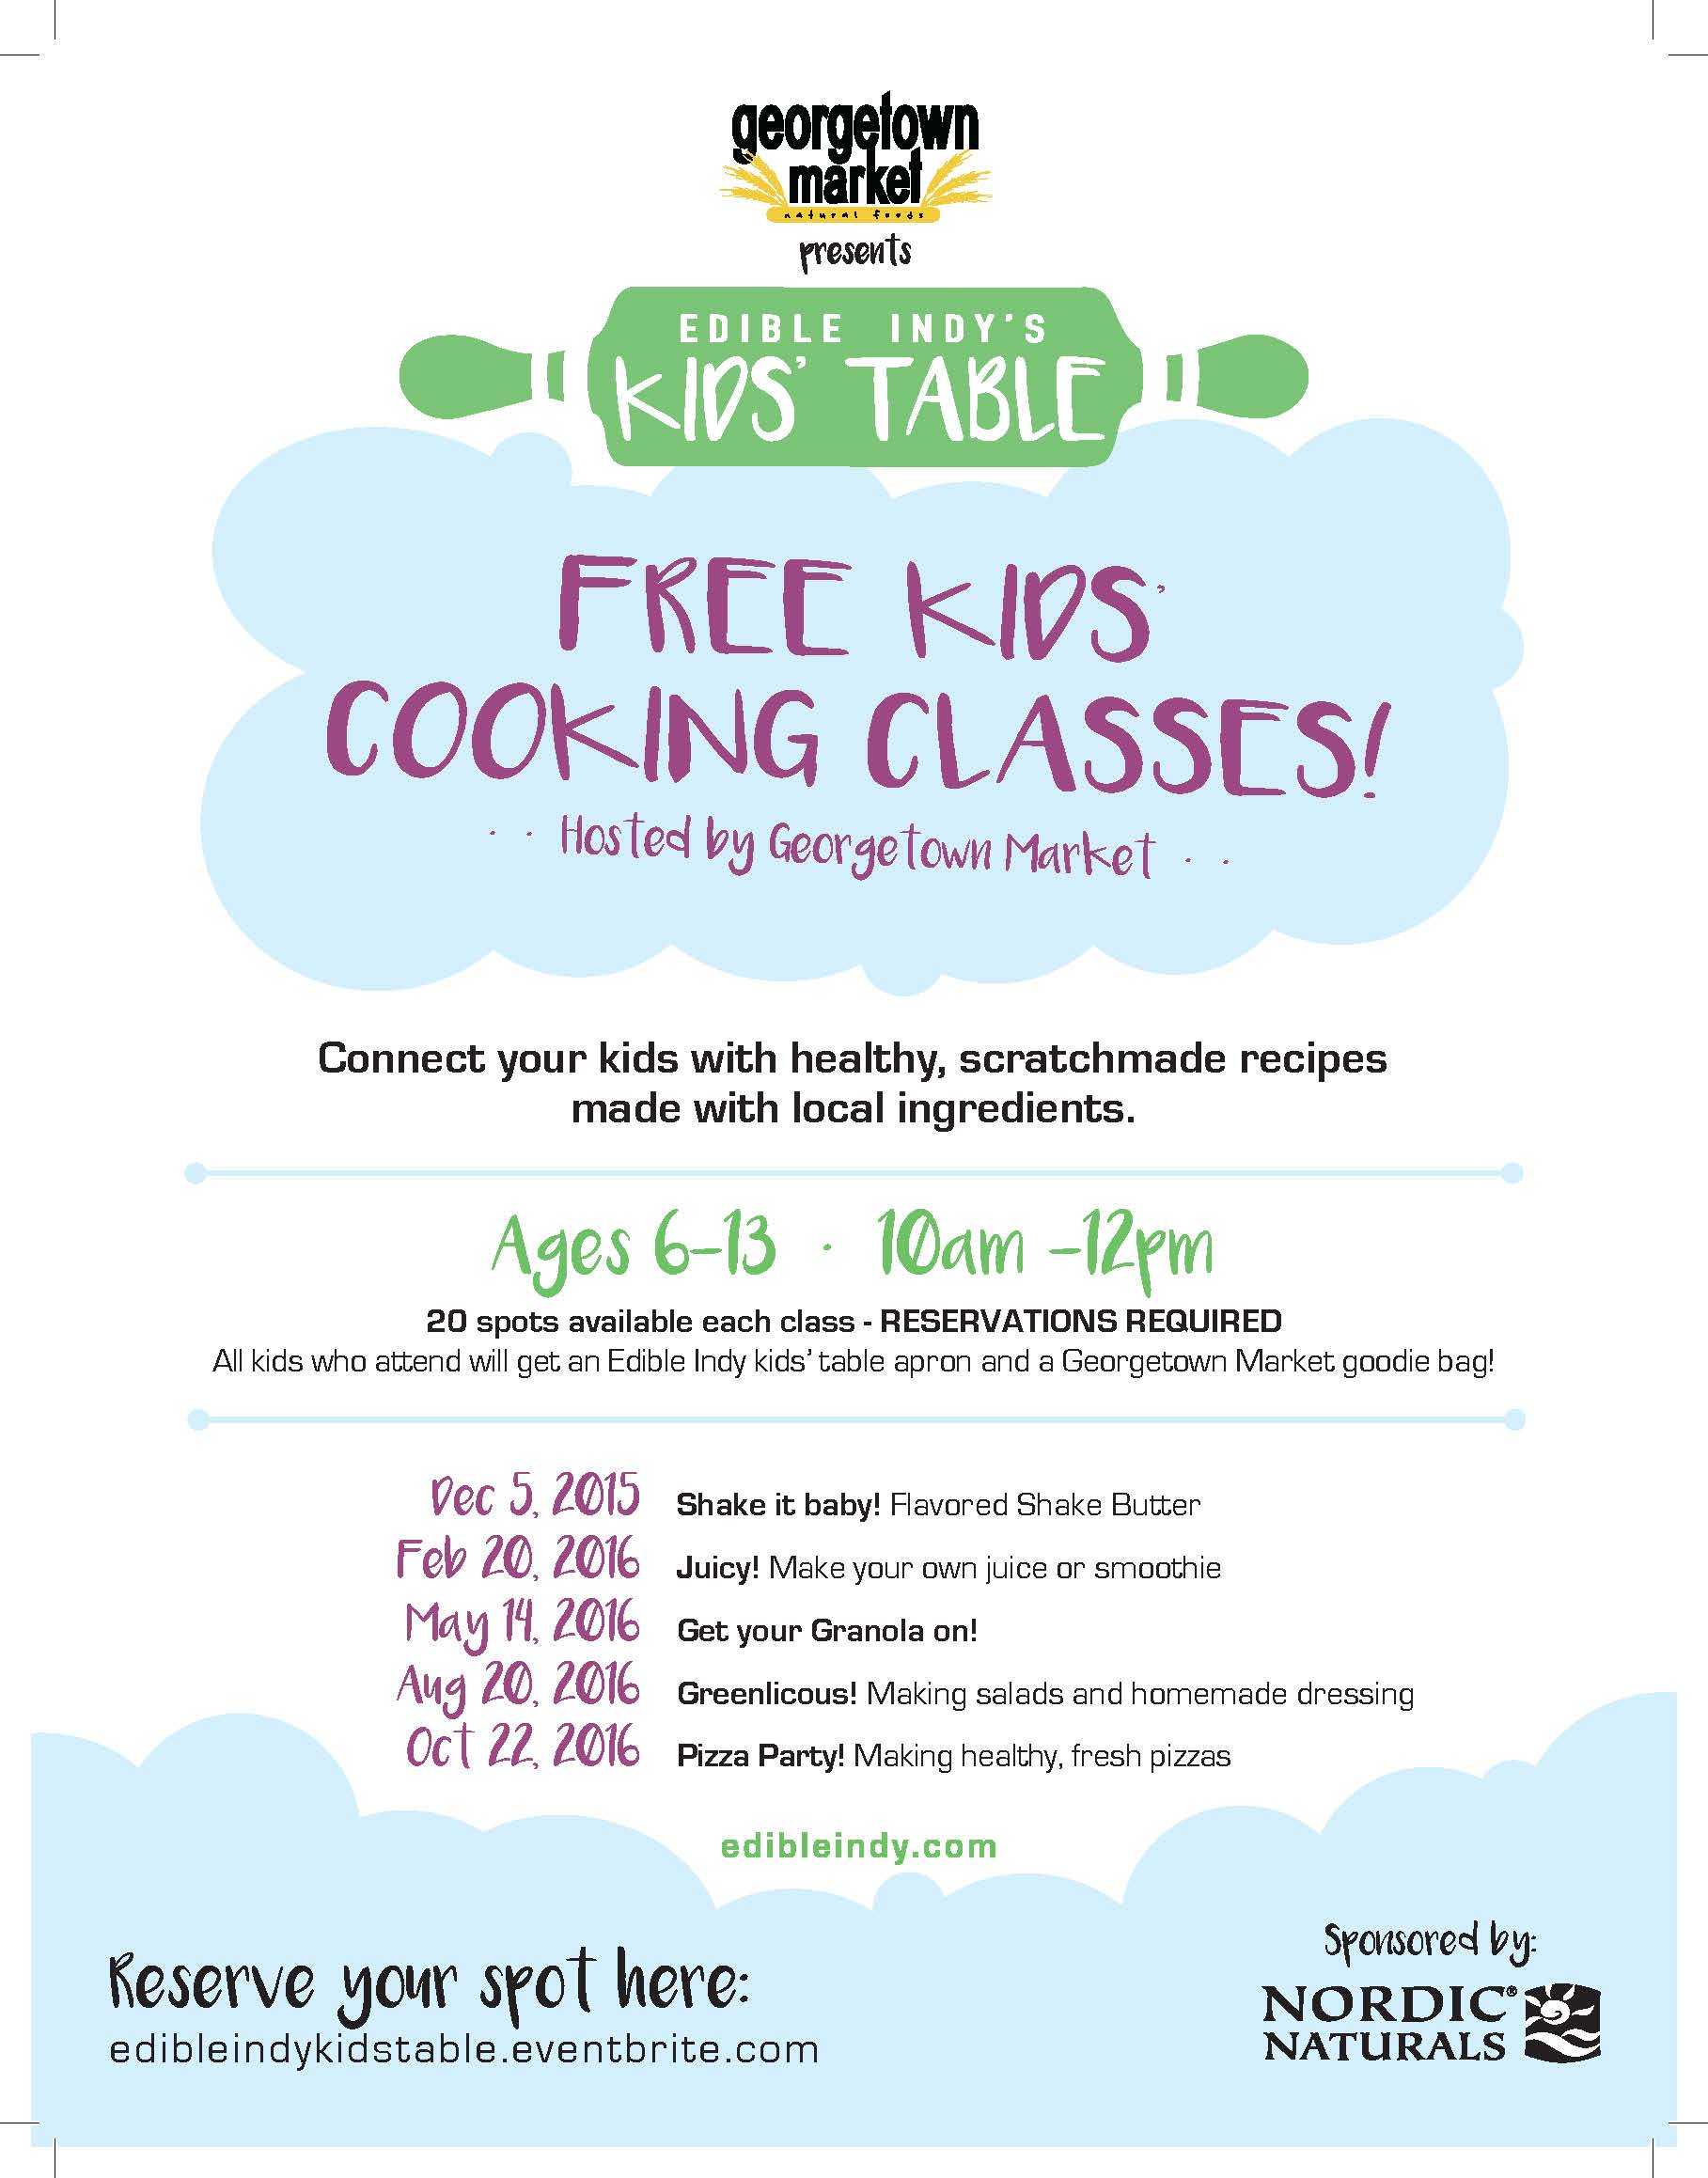 FREE Kids' Cooking Class - Edible Indy's Kids' Table